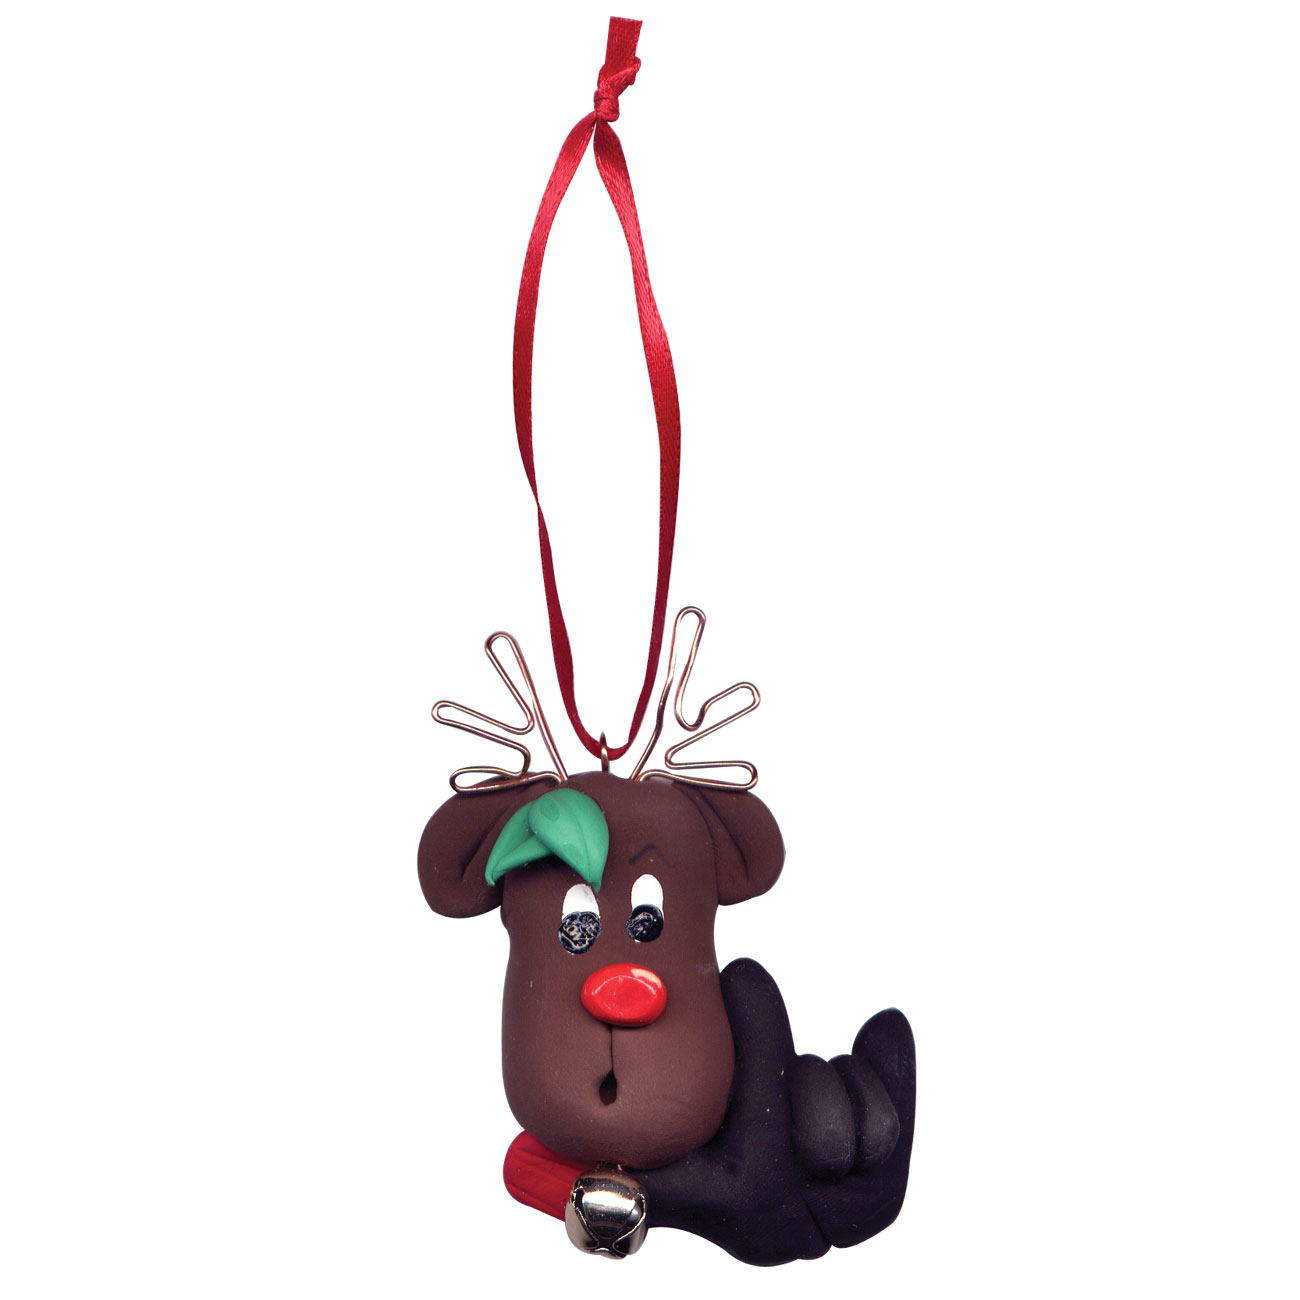 Reindeer Christmas Tree Ornament Hand Signs I Love You